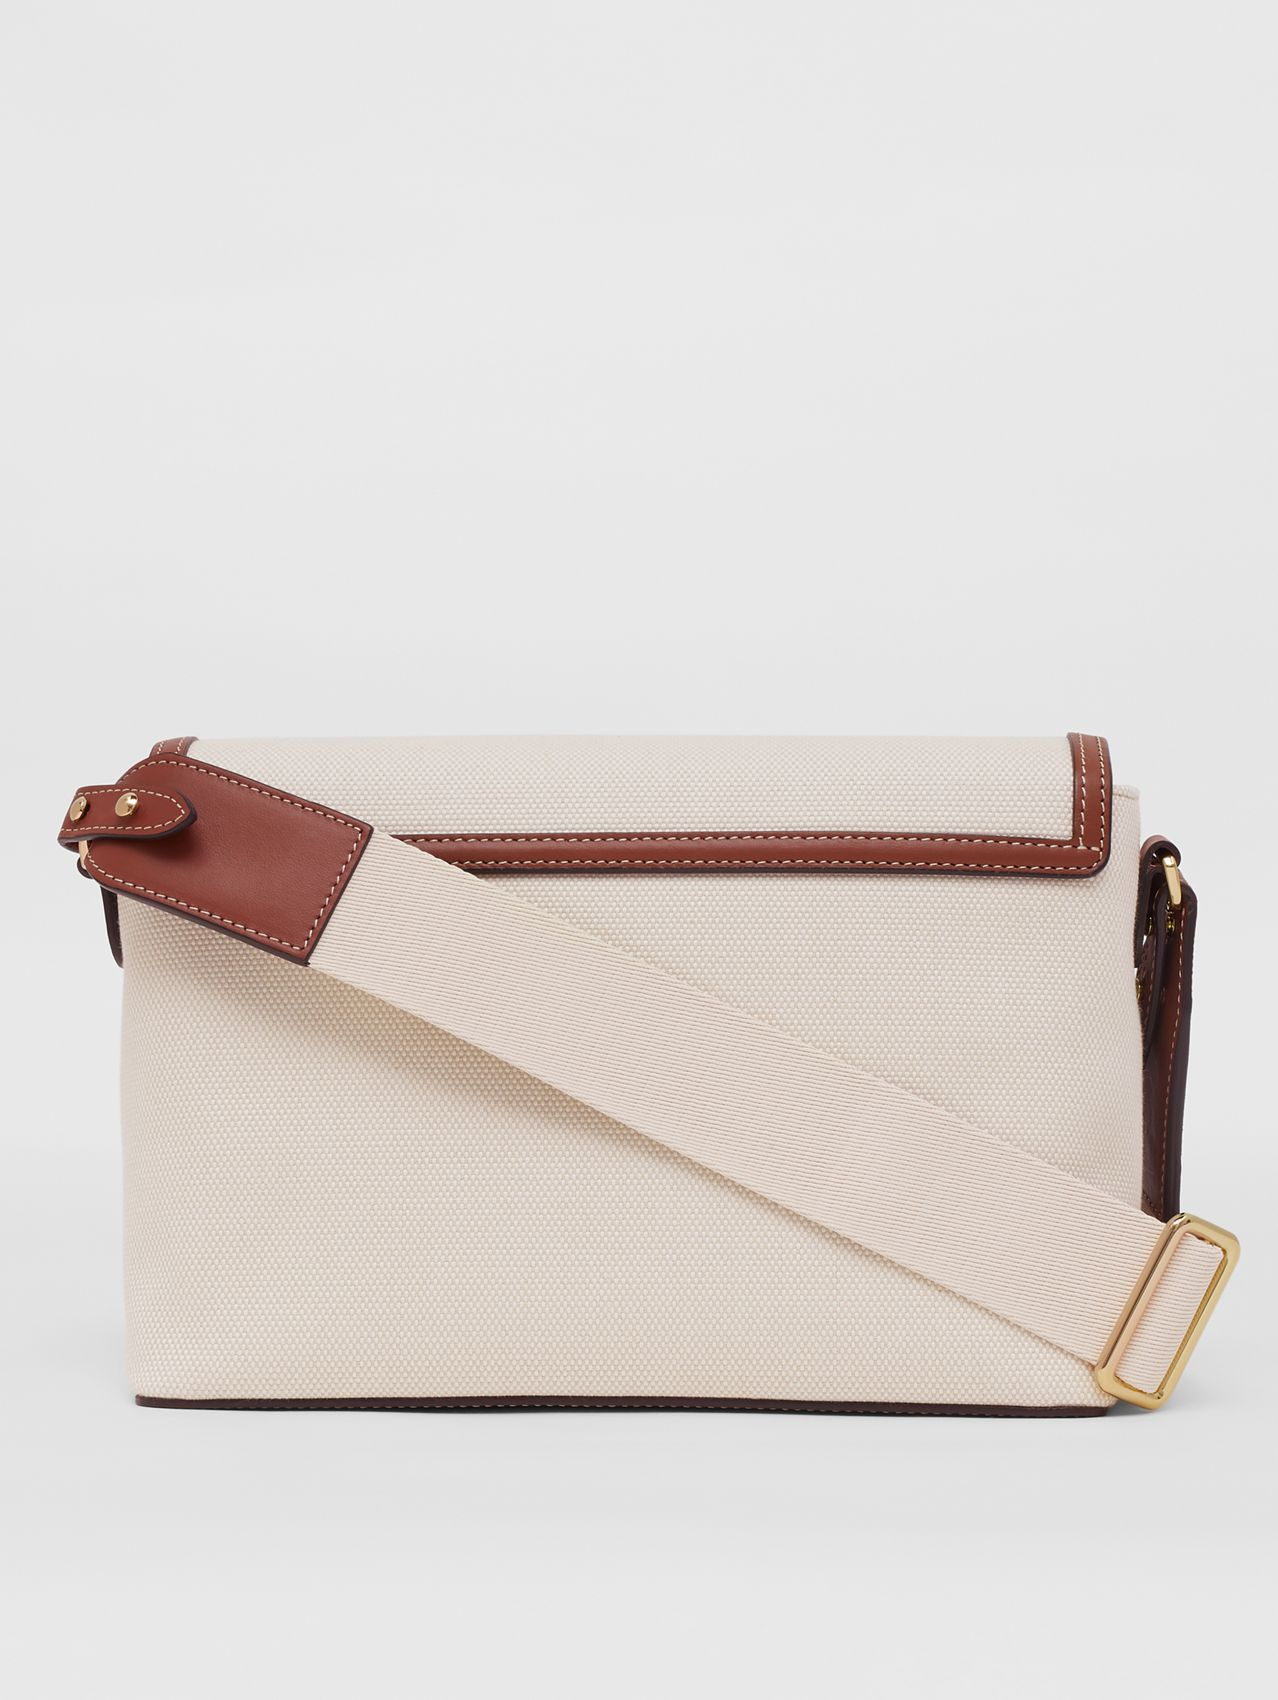 Horseferry Print Canvas Note Crossbody Bag (Natural/tan)